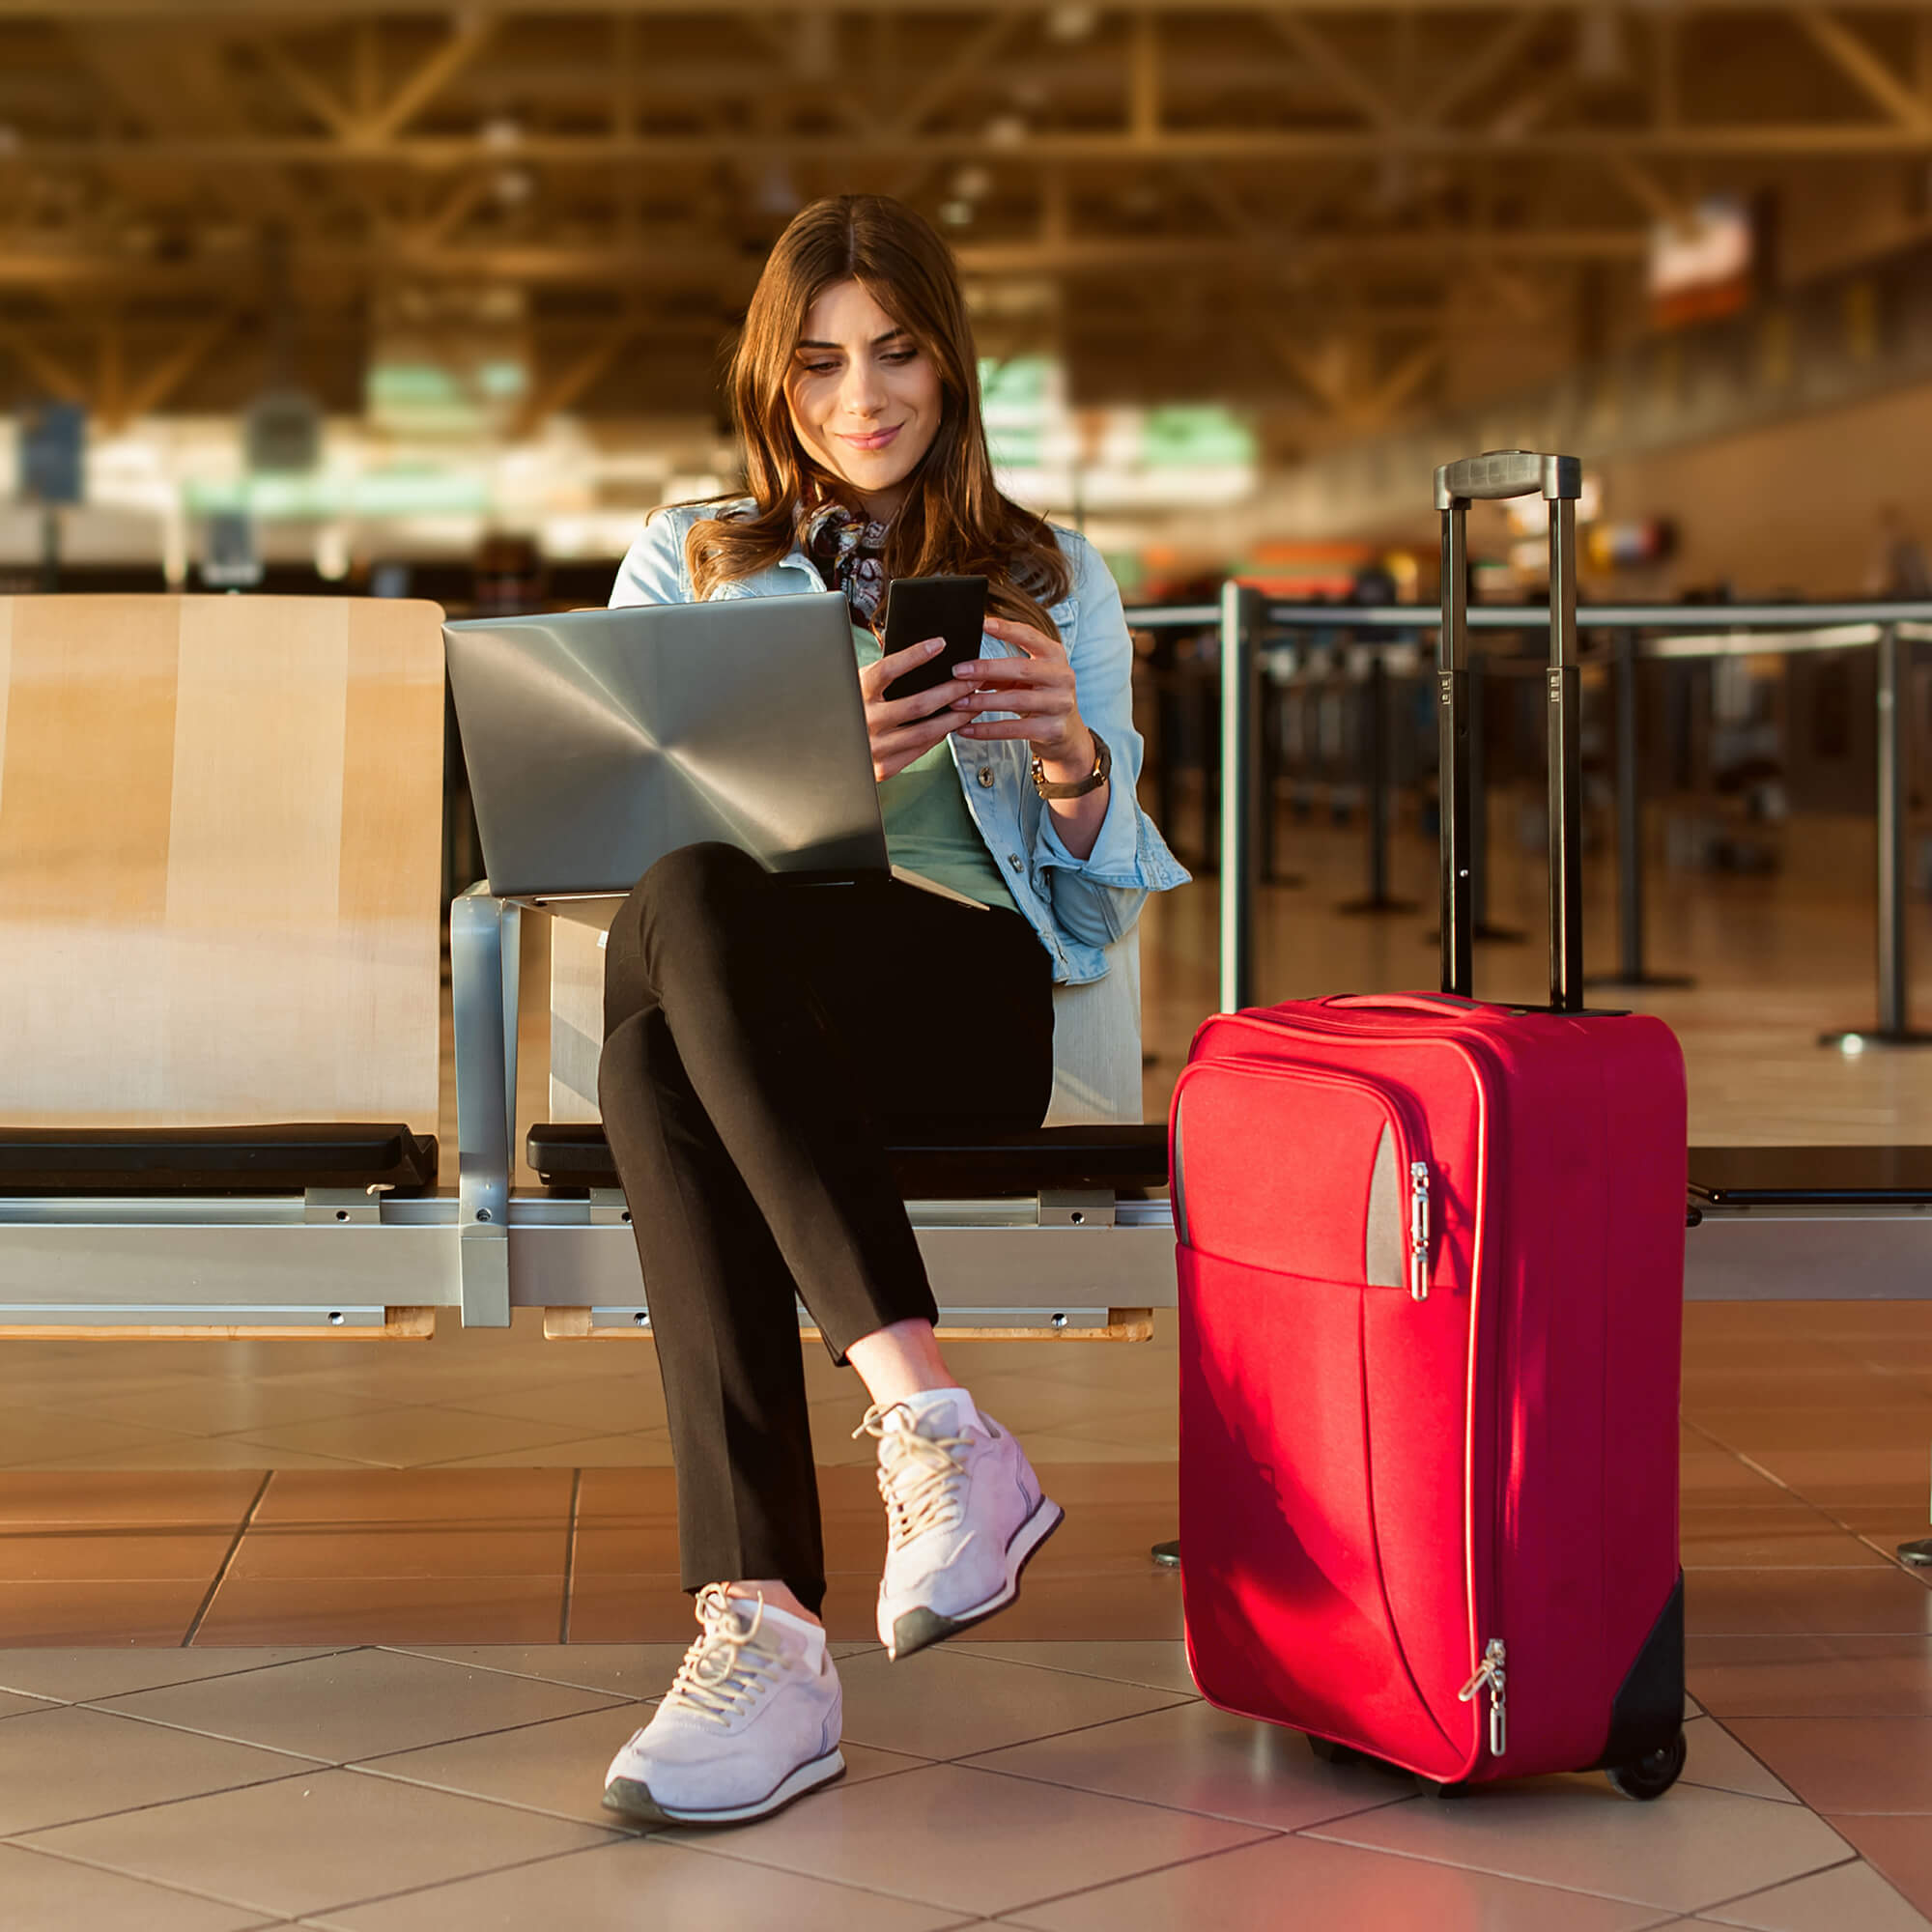 Girl on phone, waiting in airport